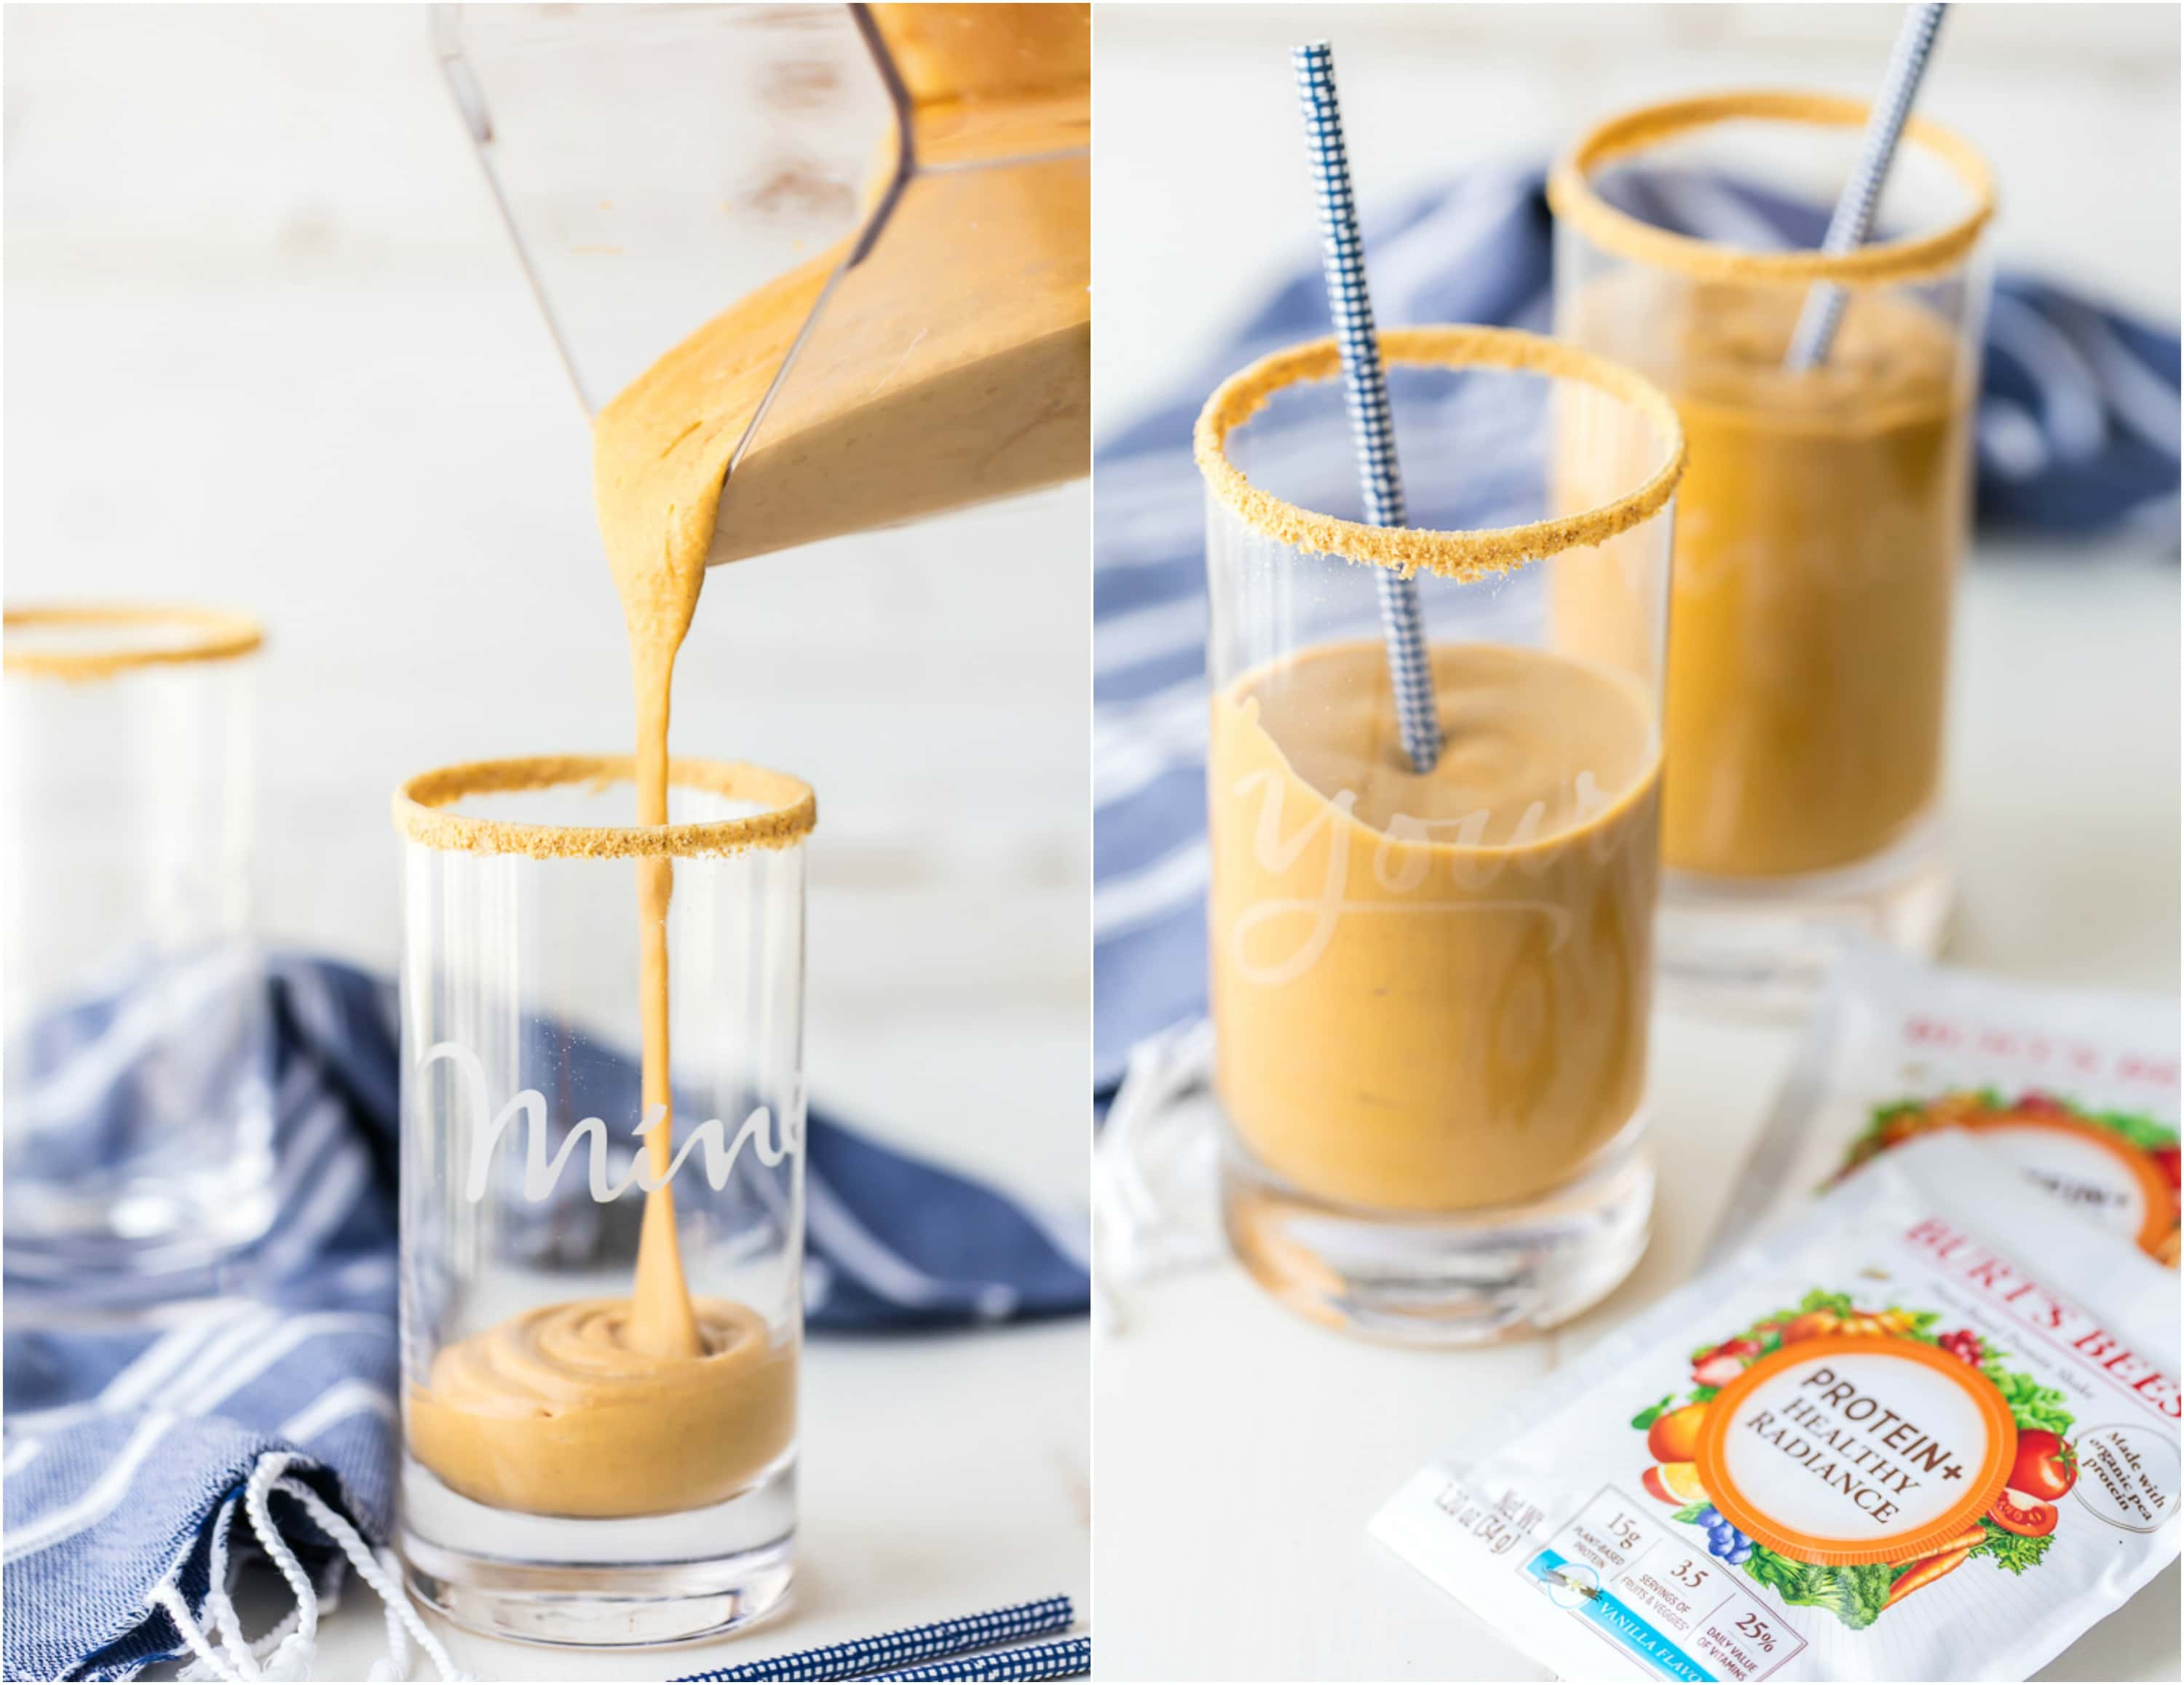 Start your day the right way with a PUMPKIN PIE PROTEIN SMOOTHIE! Loaded with protein powder, greek yogurt, pumpkin, and banana. Tastes just like pumpkin pie in smoothie form.